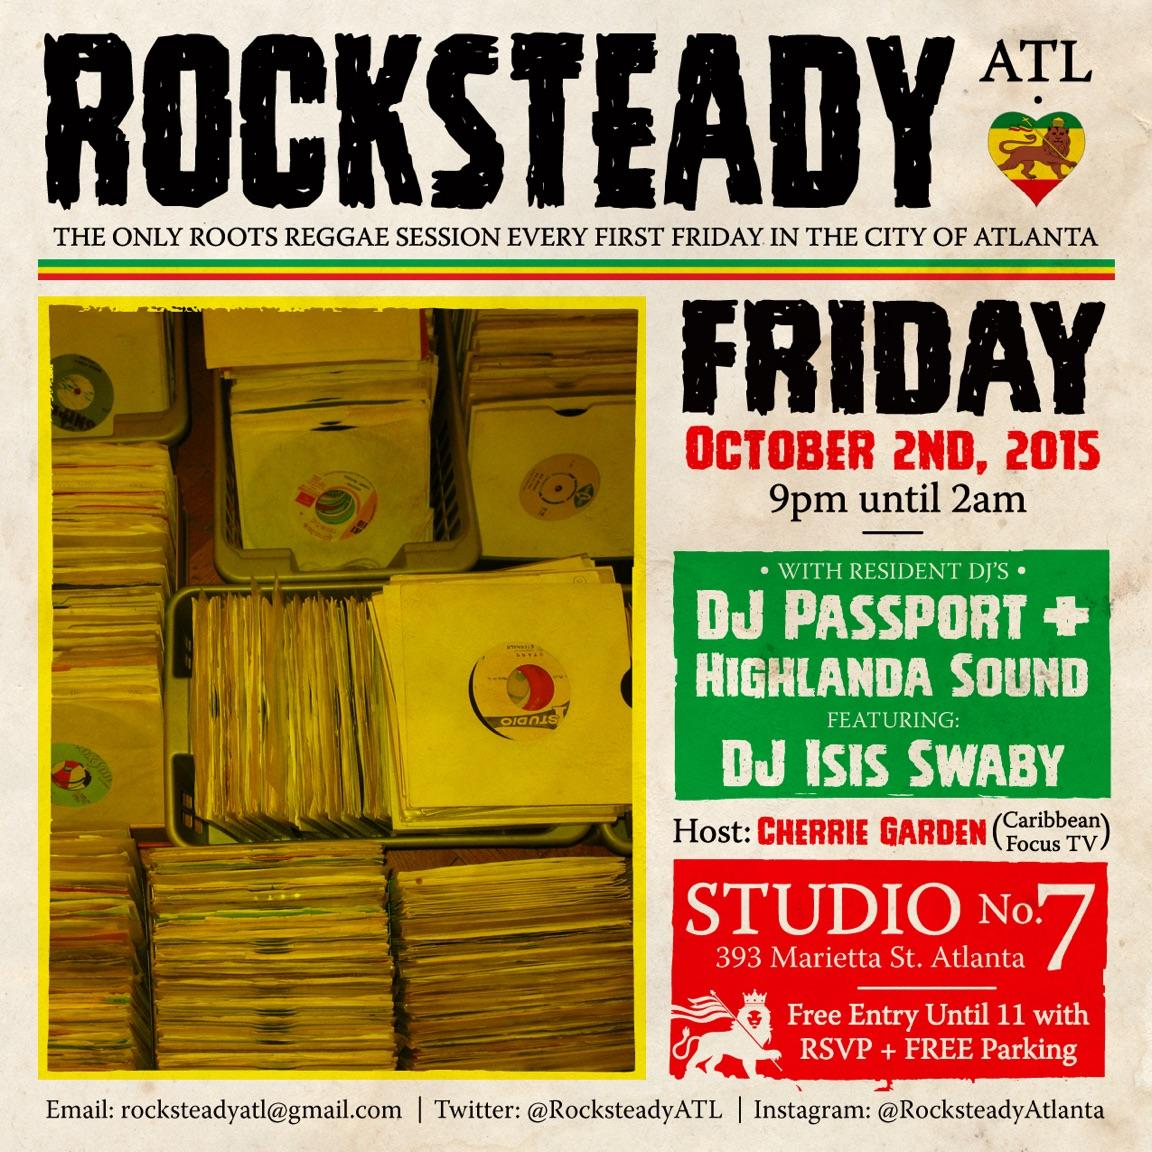 isis swaby rocksteady atl